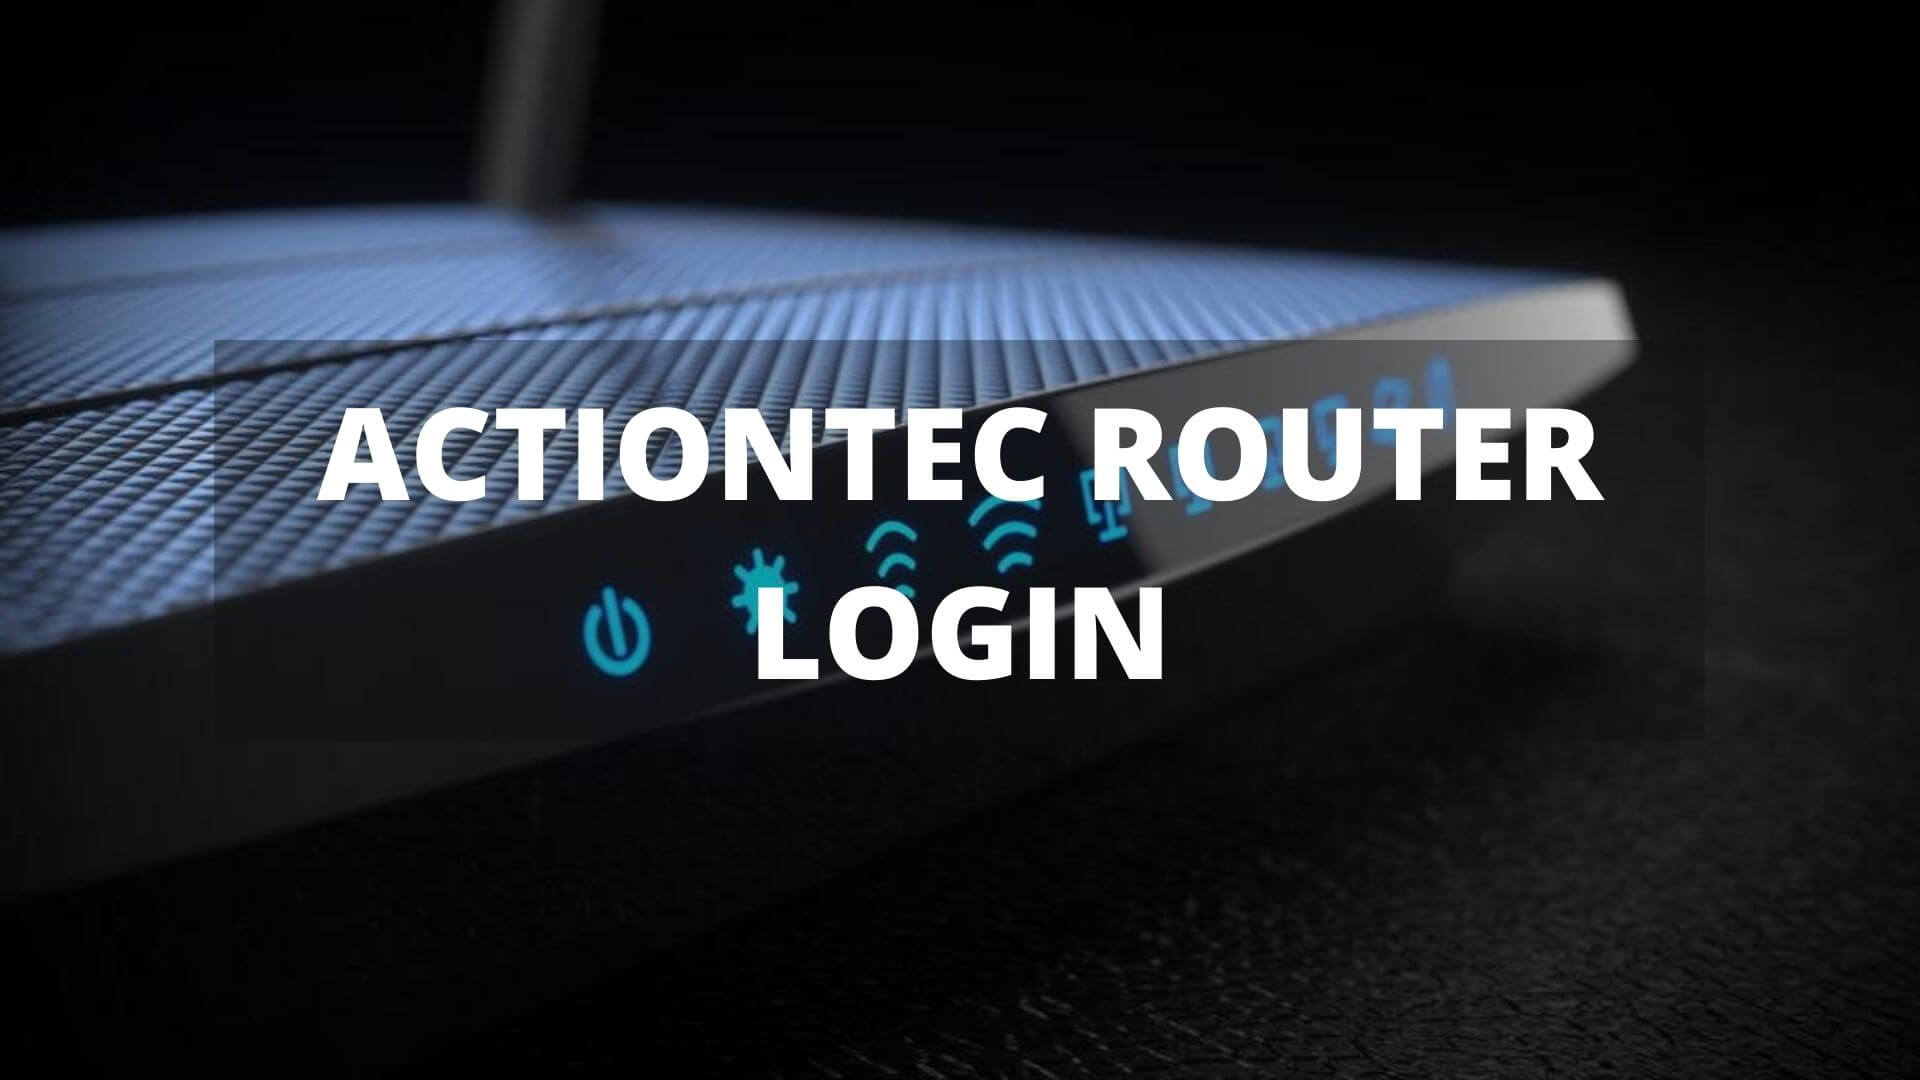 Actiontec Router Login